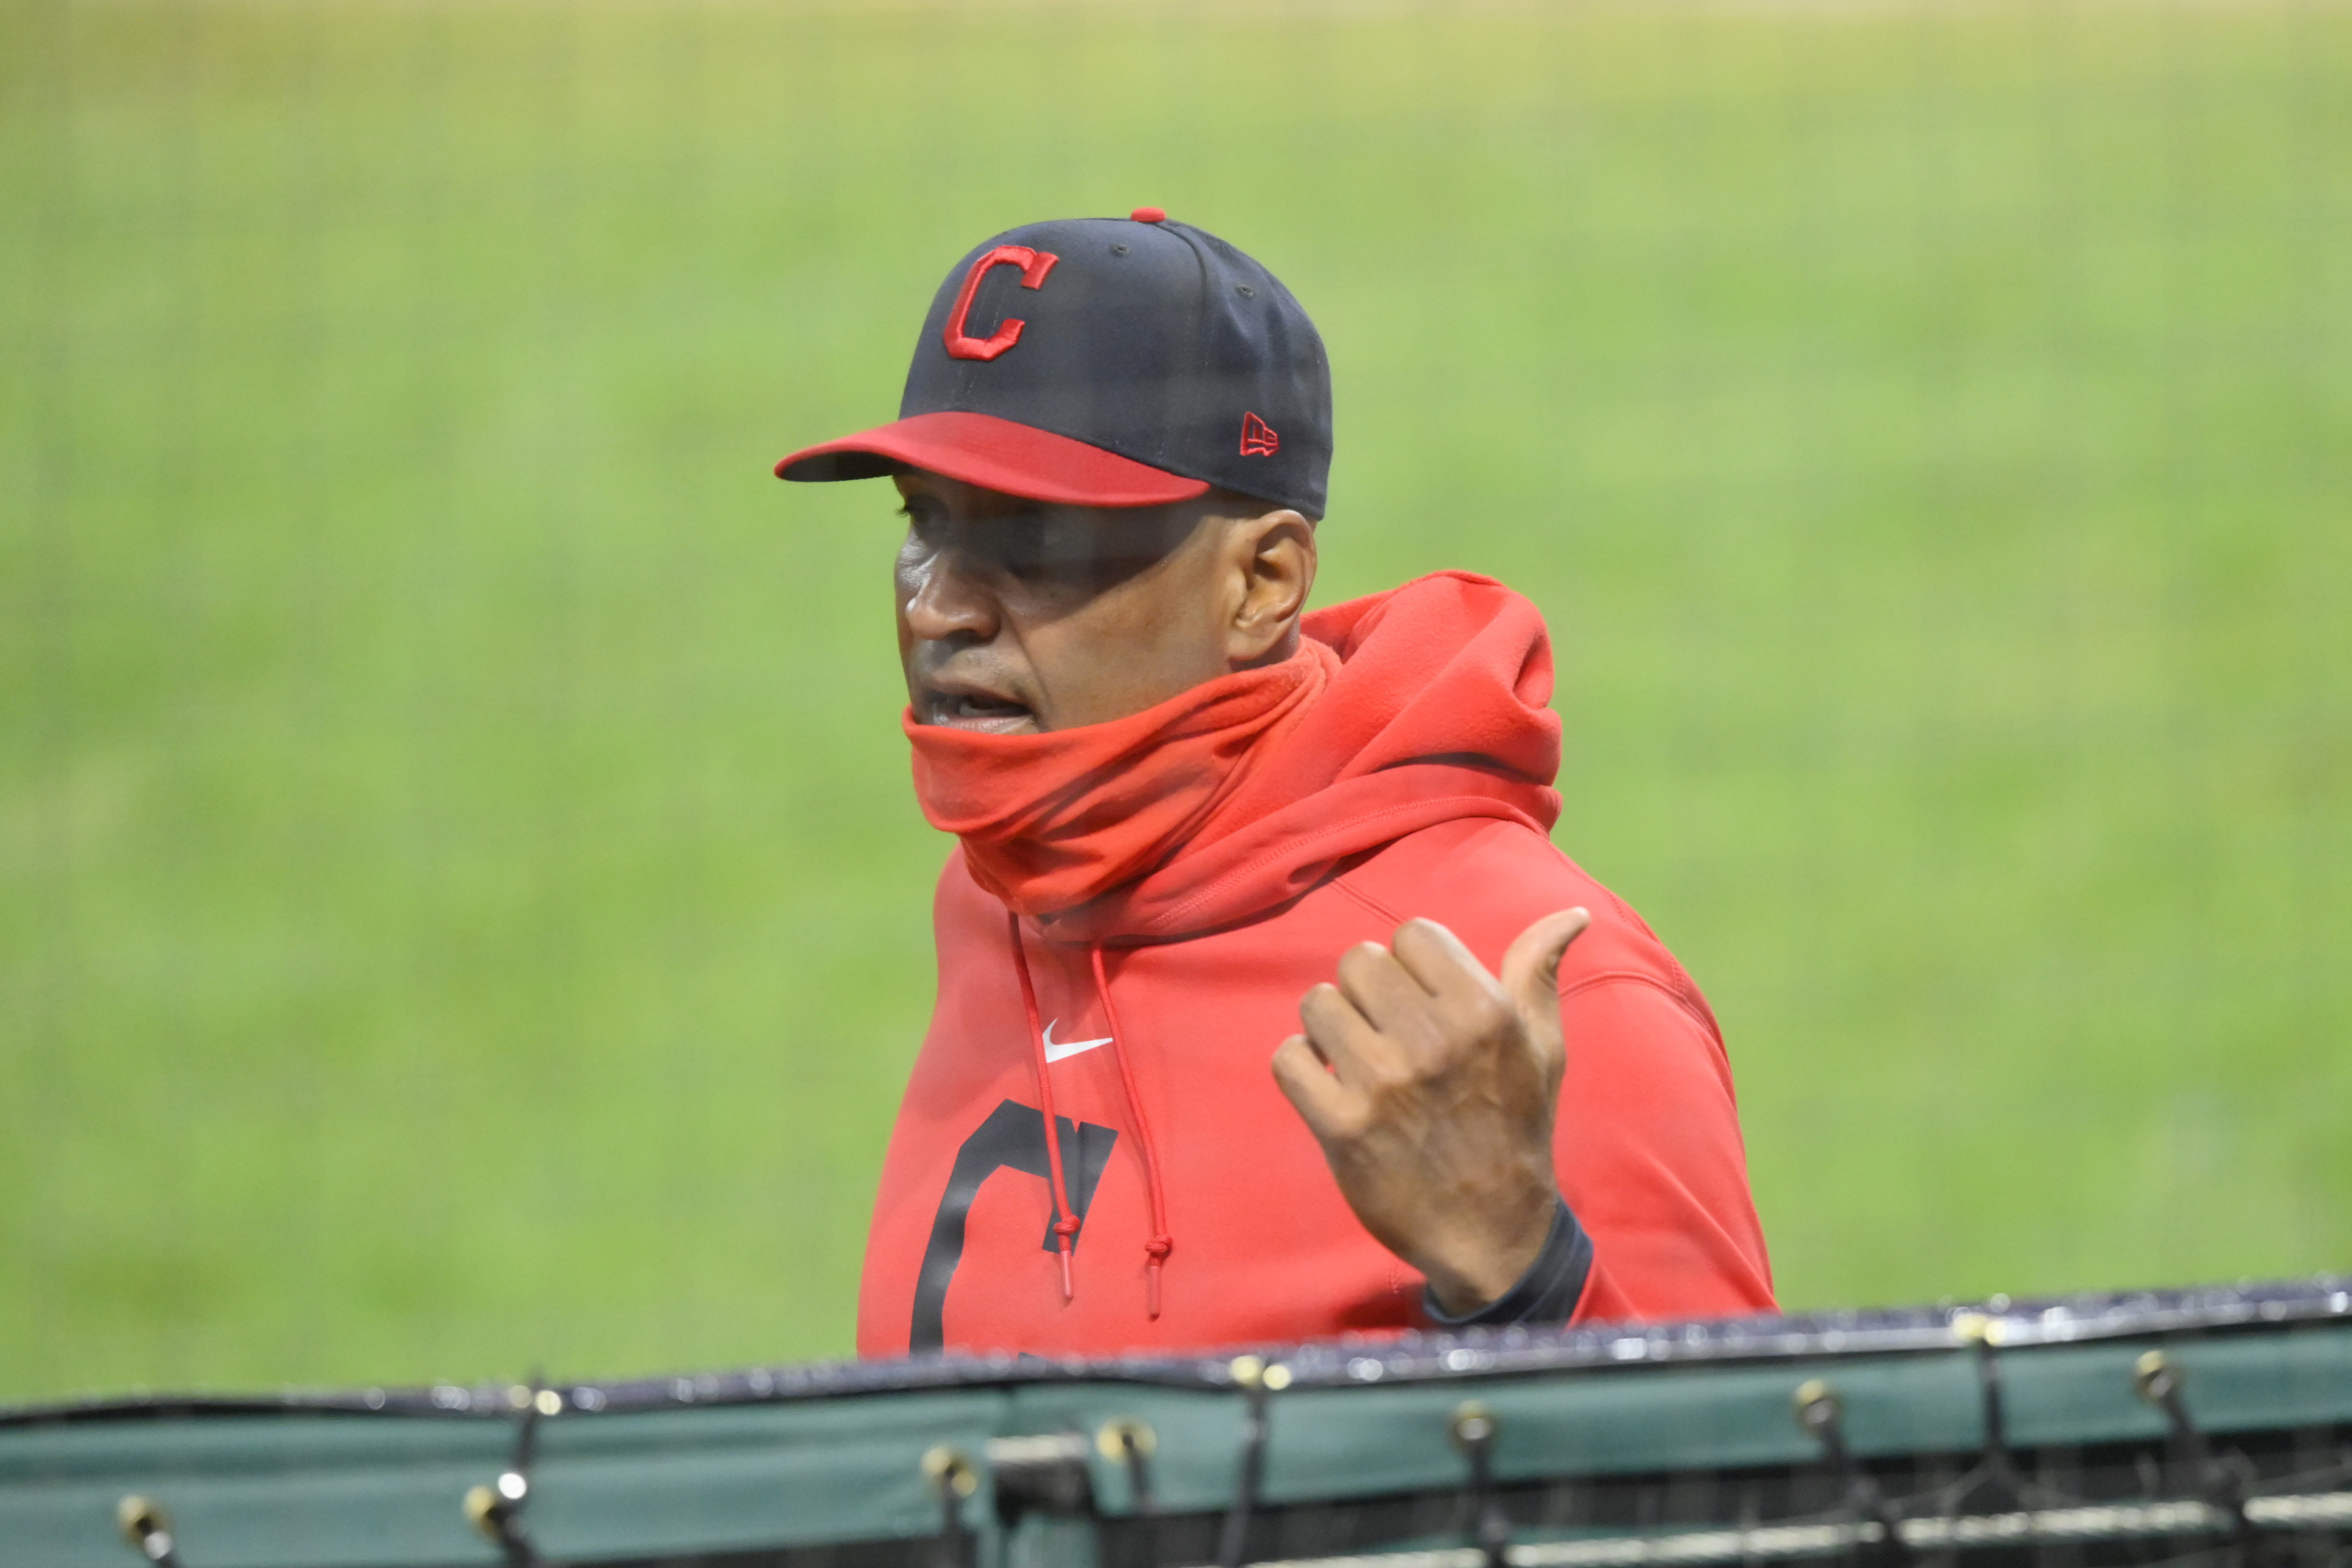 WATCH: Catching drill with Cleveland Indians' Sandy Alomar Jr. - Controlling the Quadrant: Manipulate the Glove